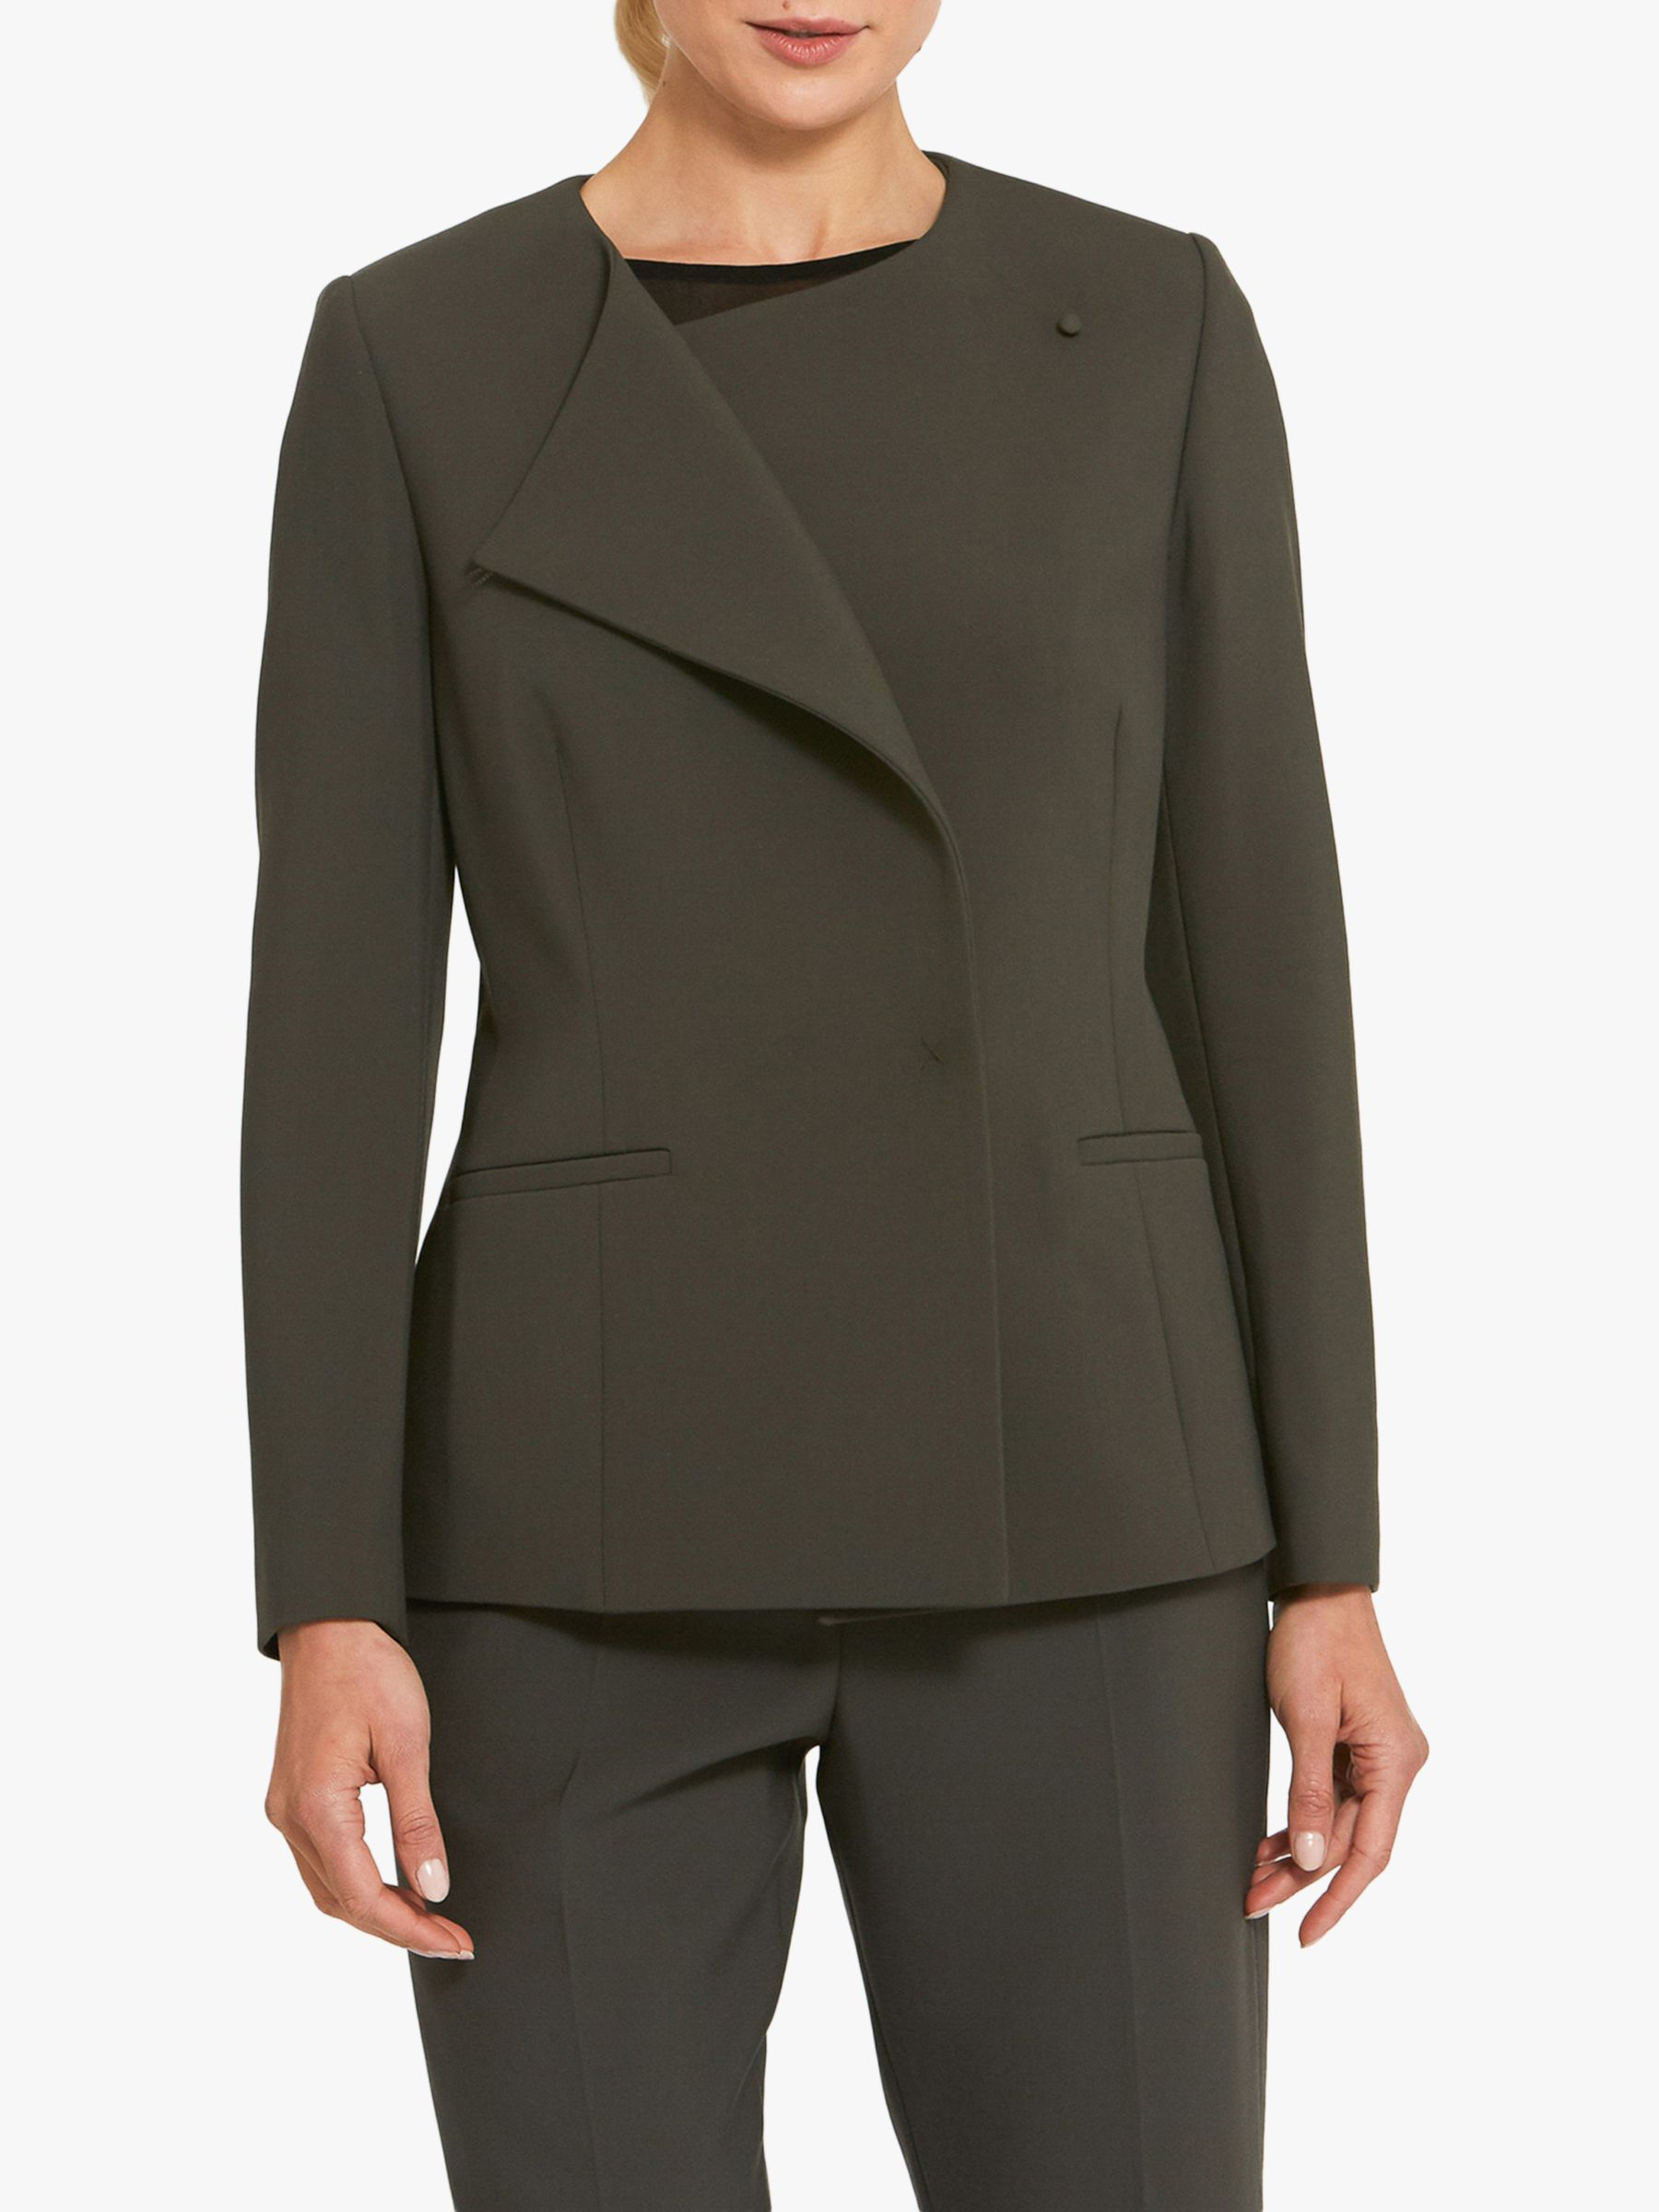 Helen McAlinden Helen McAlinden Vogue Tailored Jacket